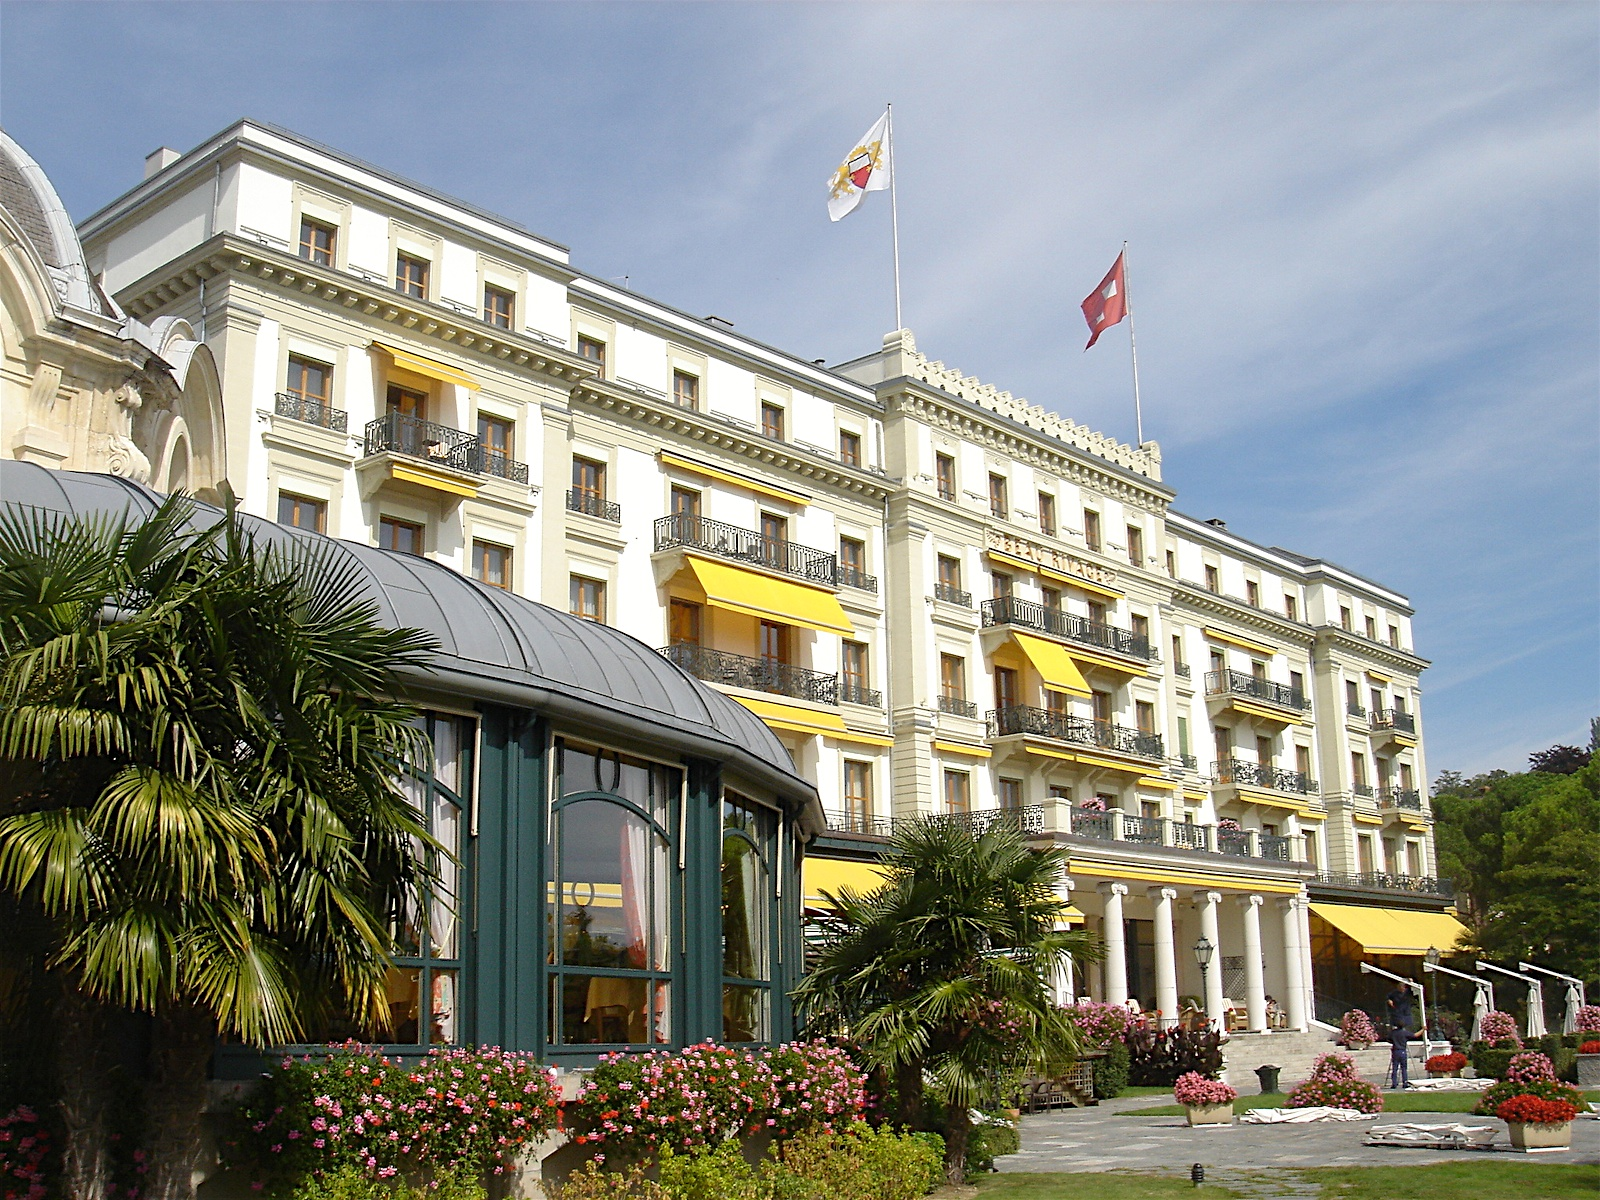 Beau Rivage Palace Hotel Lausanne Switzerland